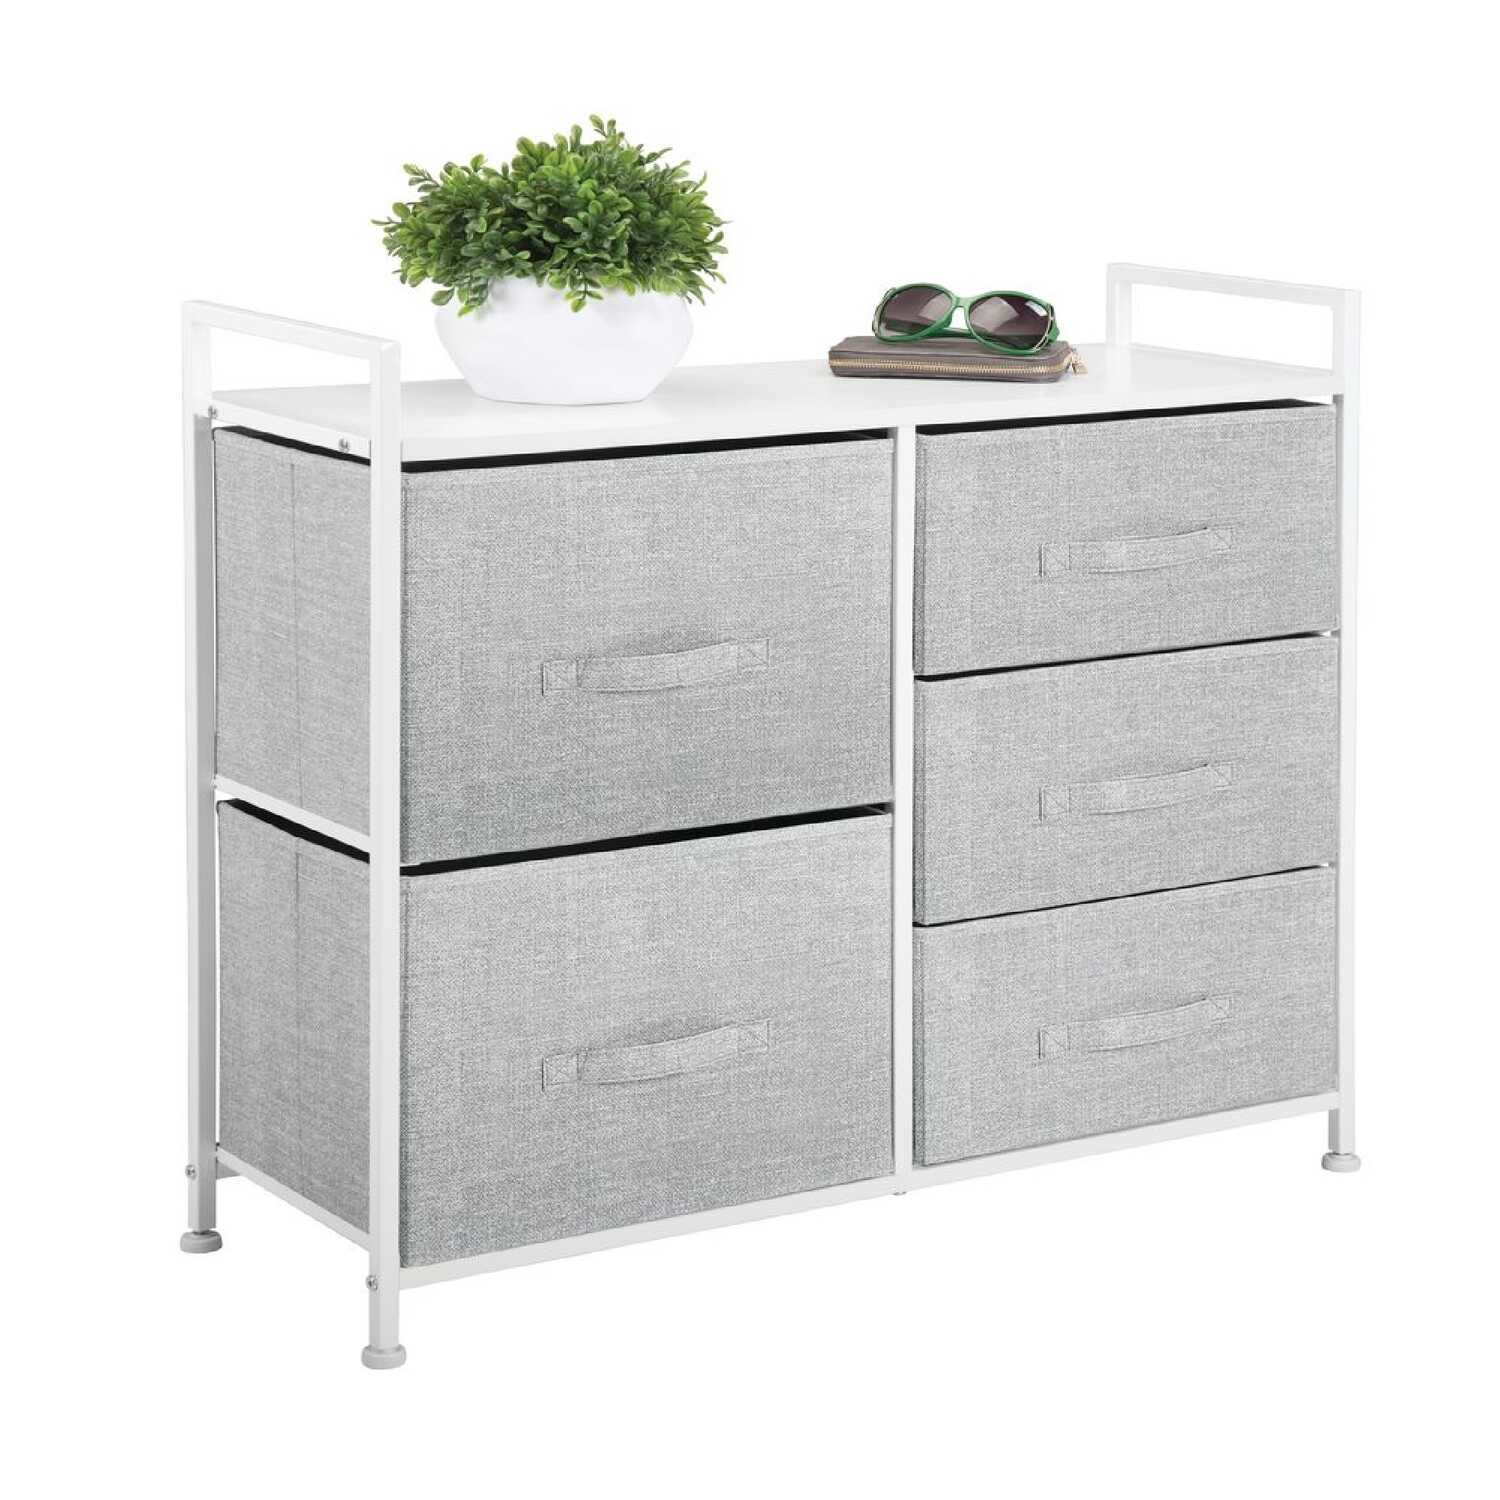 InterDesign  Aldo  21.75 in. H x 11.4 in. W x 32.6 in. D Storage Unit